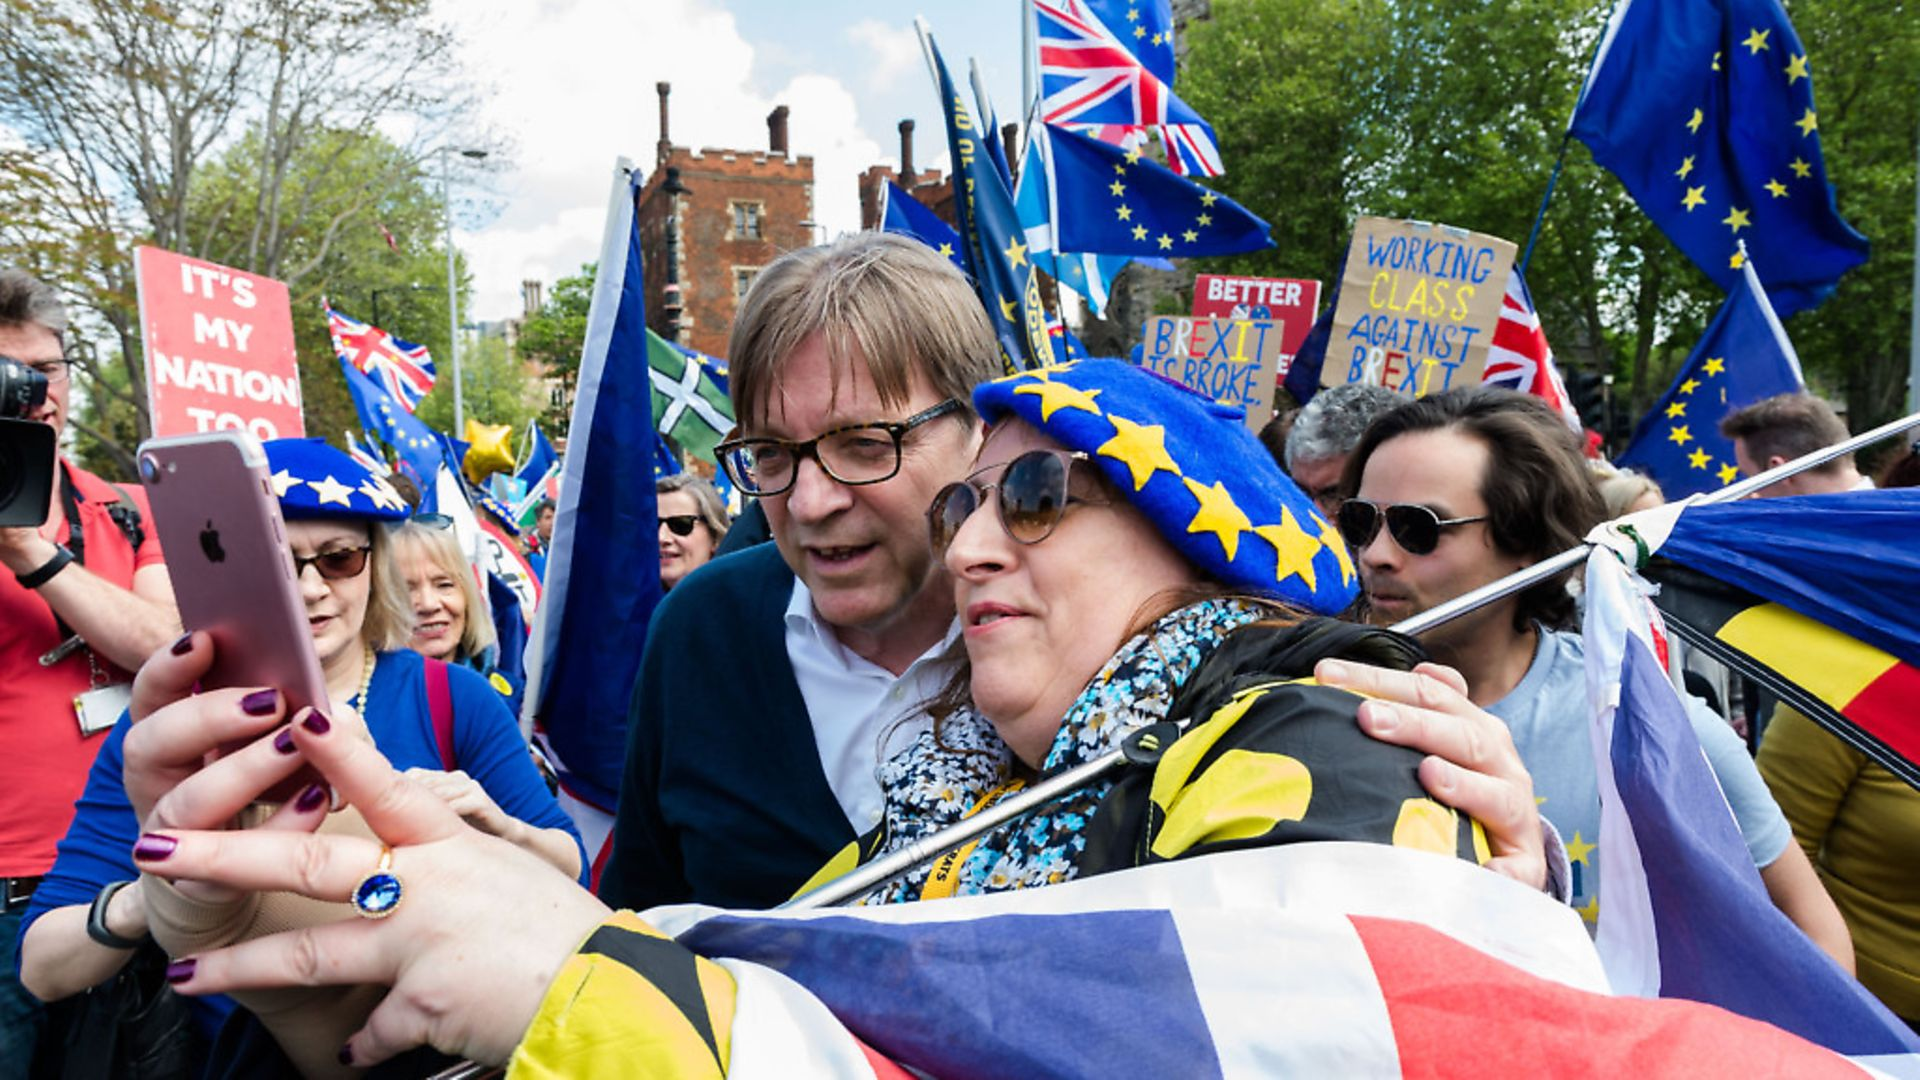 Guy Verhofstadt, European Parliament's chief Brexit negotiator, poses for a selfie as he joins a group of pro-EU supporters protesting against Brexit. (Wiktor Szymanowicz / Barcroft Media via Getty Images) - Credit: Barcroft Media via Getty Images